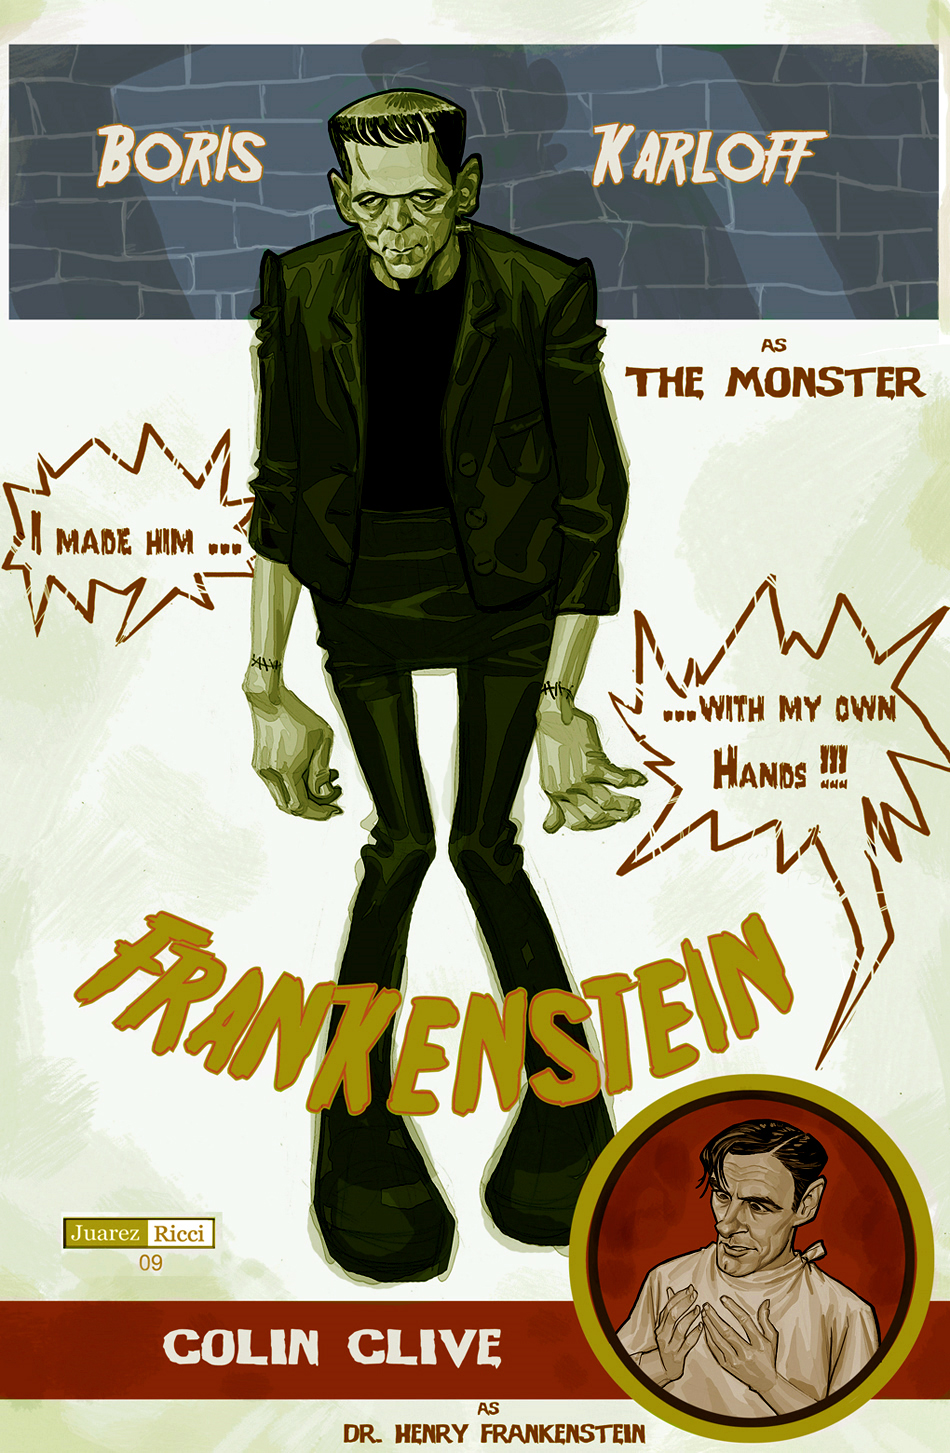 Frankenstein by juarezricci